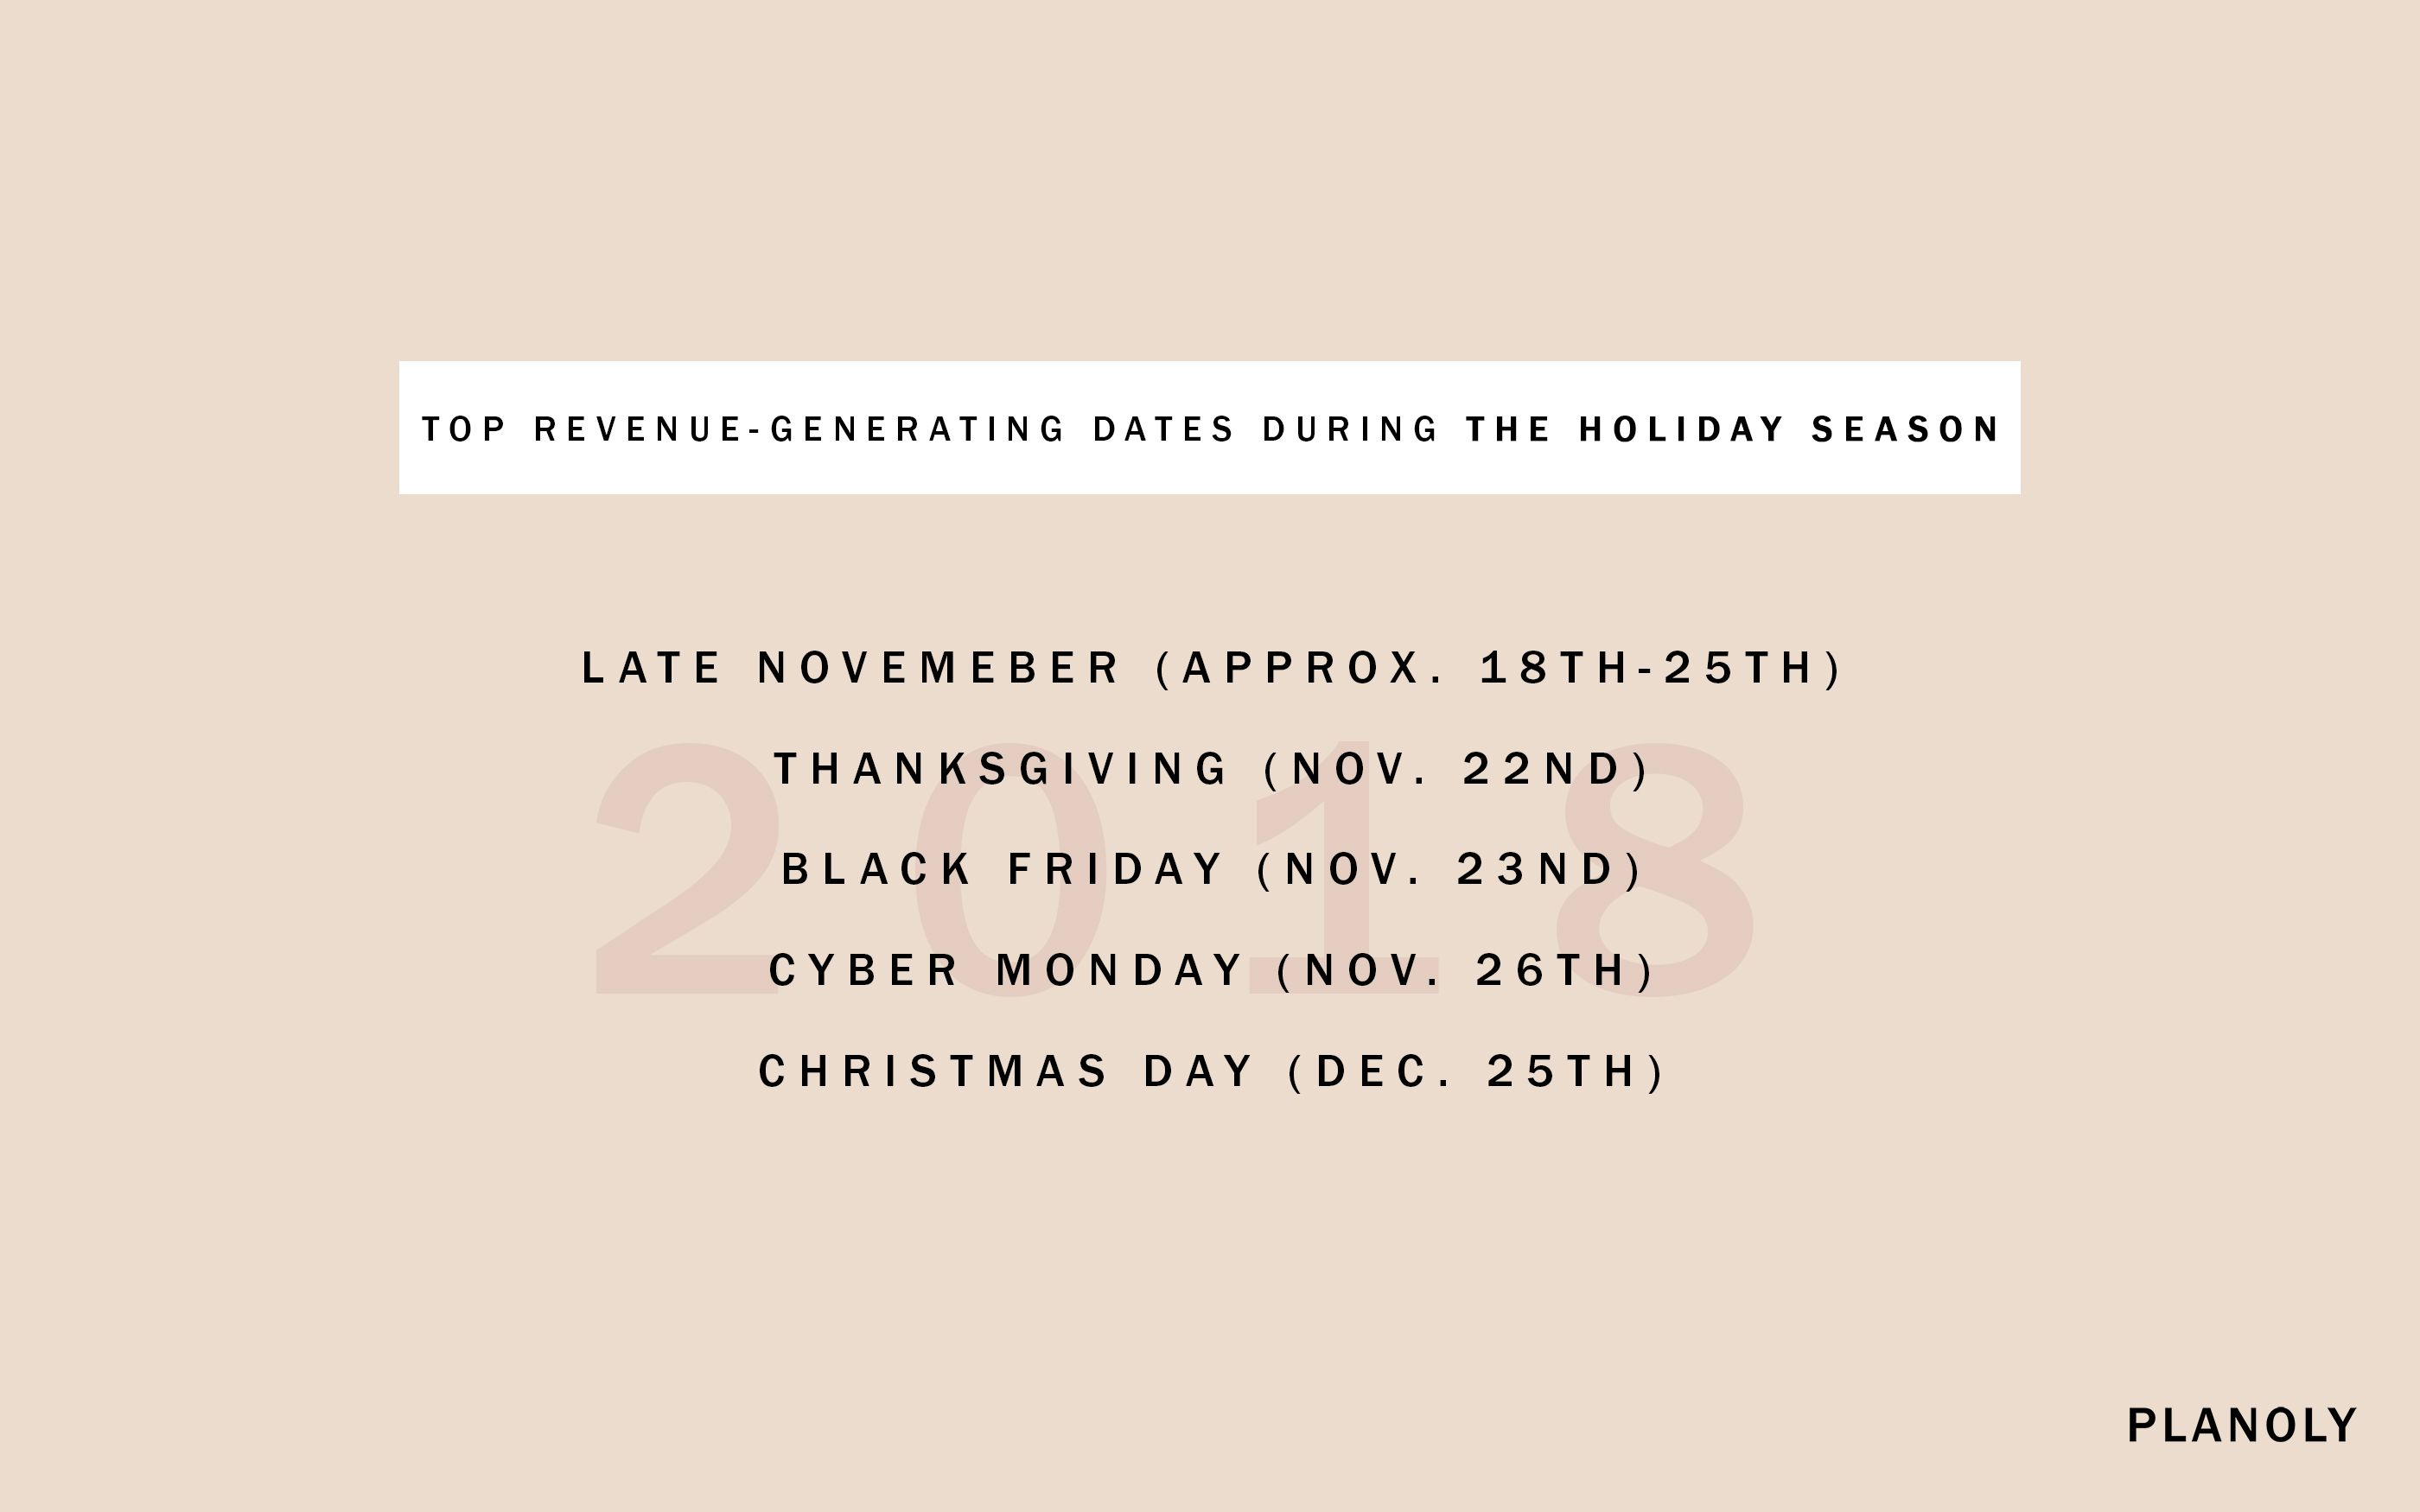 How to Use Influencers to Promote Your Brand Throughout the Holidays